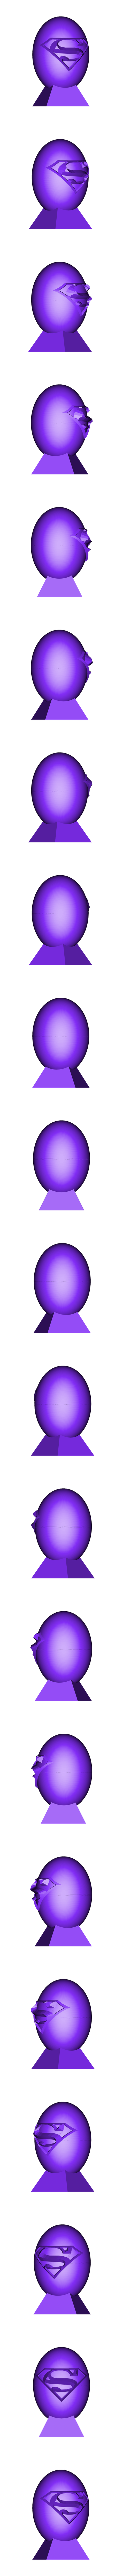 Super oeufs superman.stl Download free STL file Super Eggs Collection with base • 3D printer object, psl